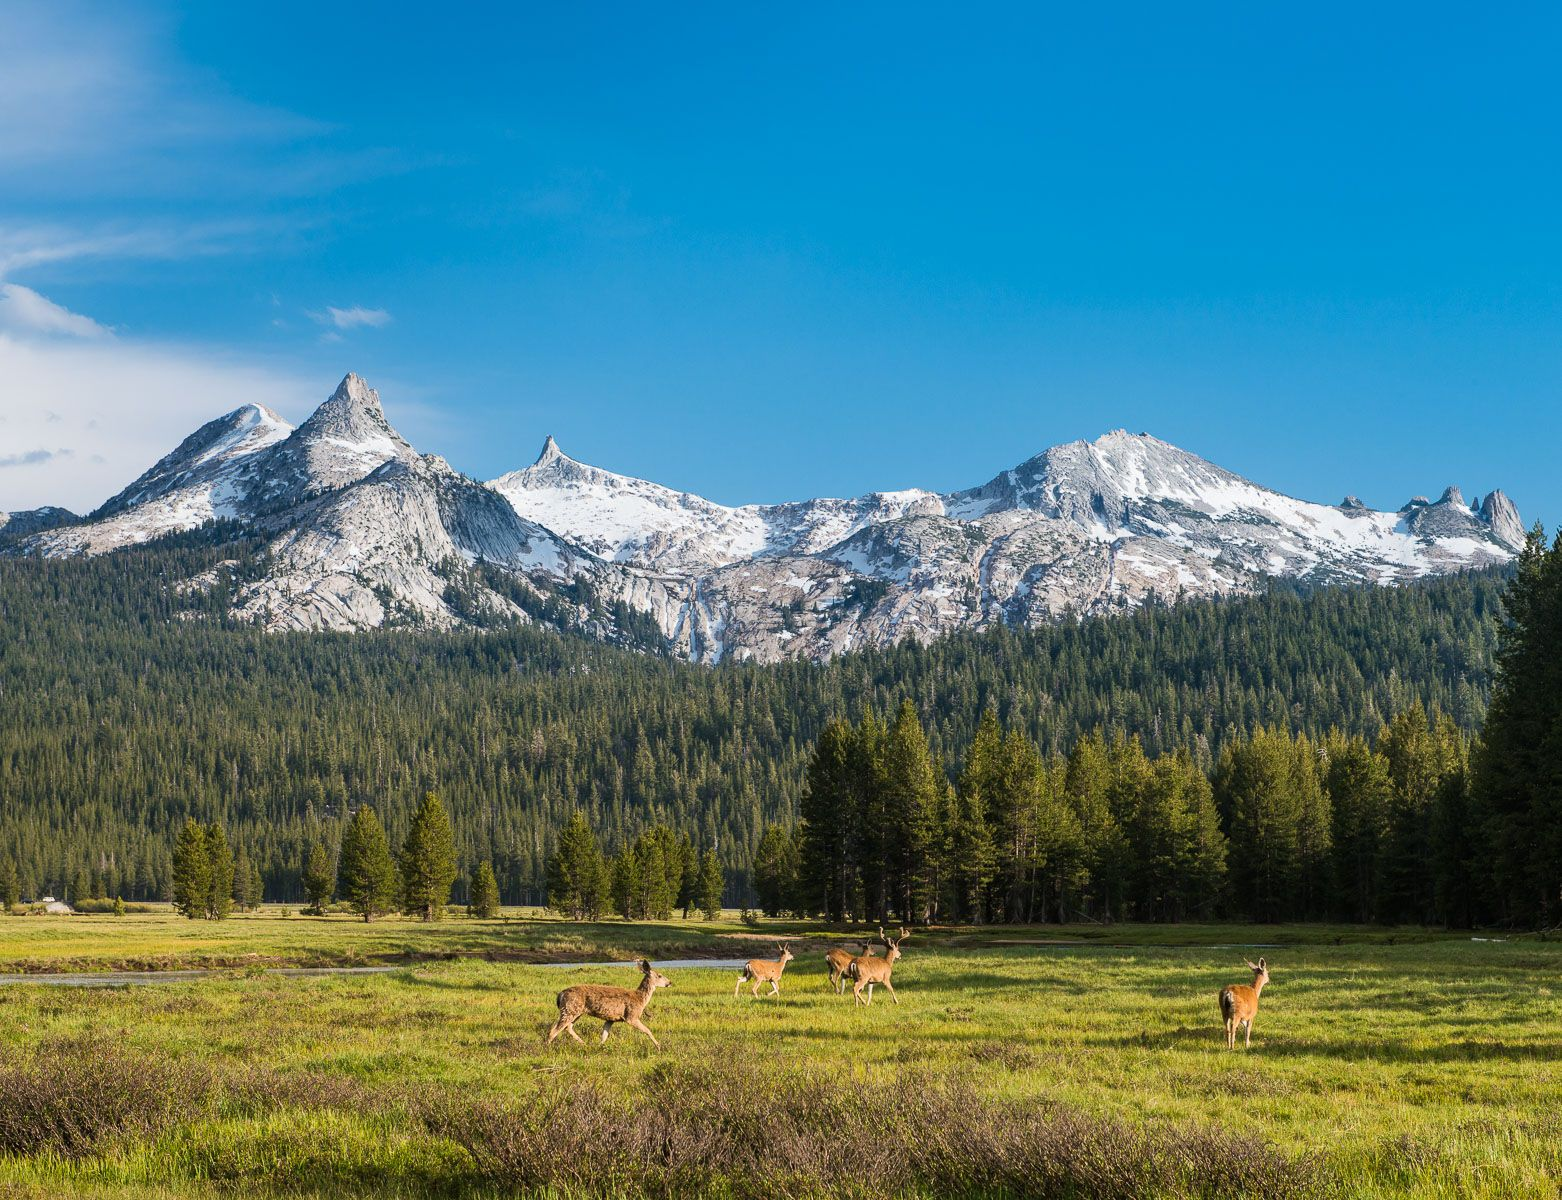 Deer Running through Tuolomne Meandows with Cathederal Range in the Background